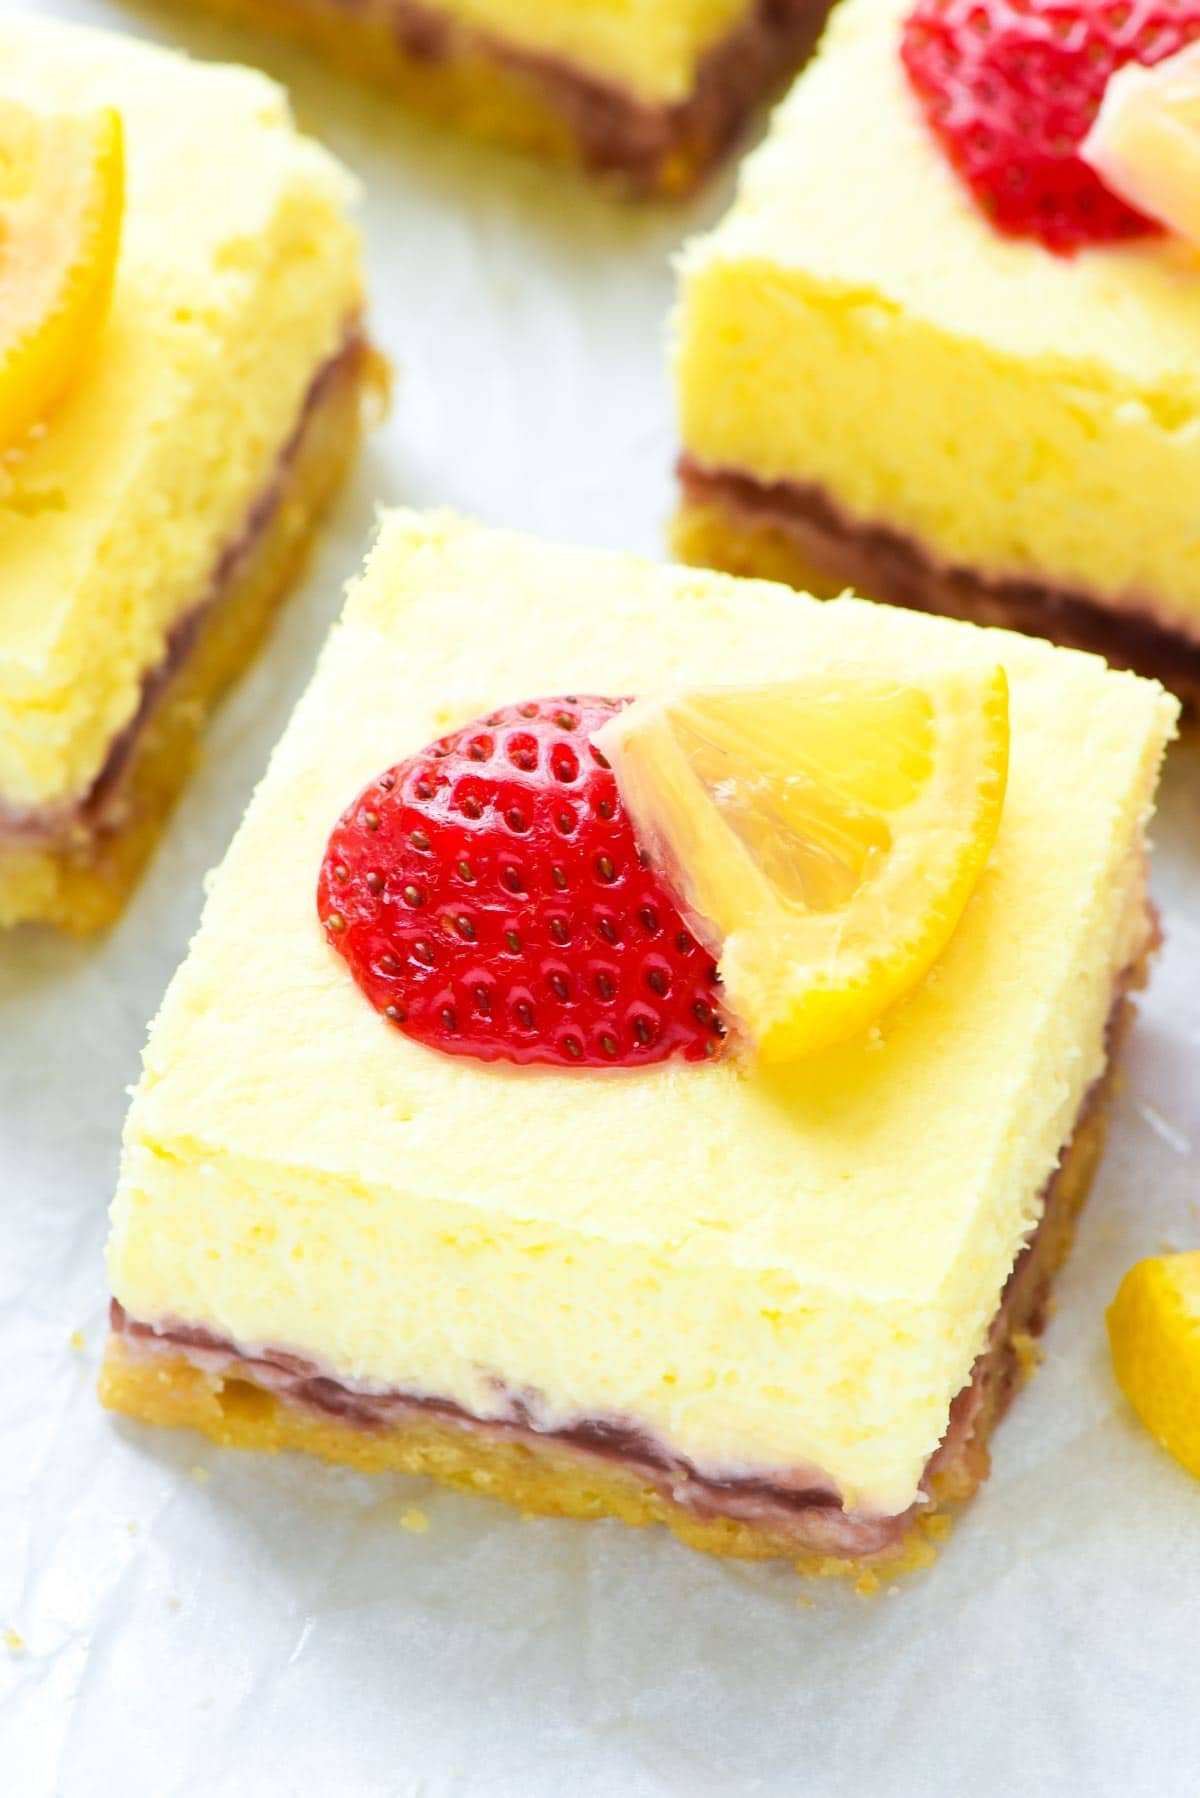 Creamy and rich Strawberry Lemon Cream Cheese Bars — Layers of buttery shortbread crust, strawberry jam, and creamiest lemon cheesecake. The perfect summer dessert for any picnic or potluck! @wellplated